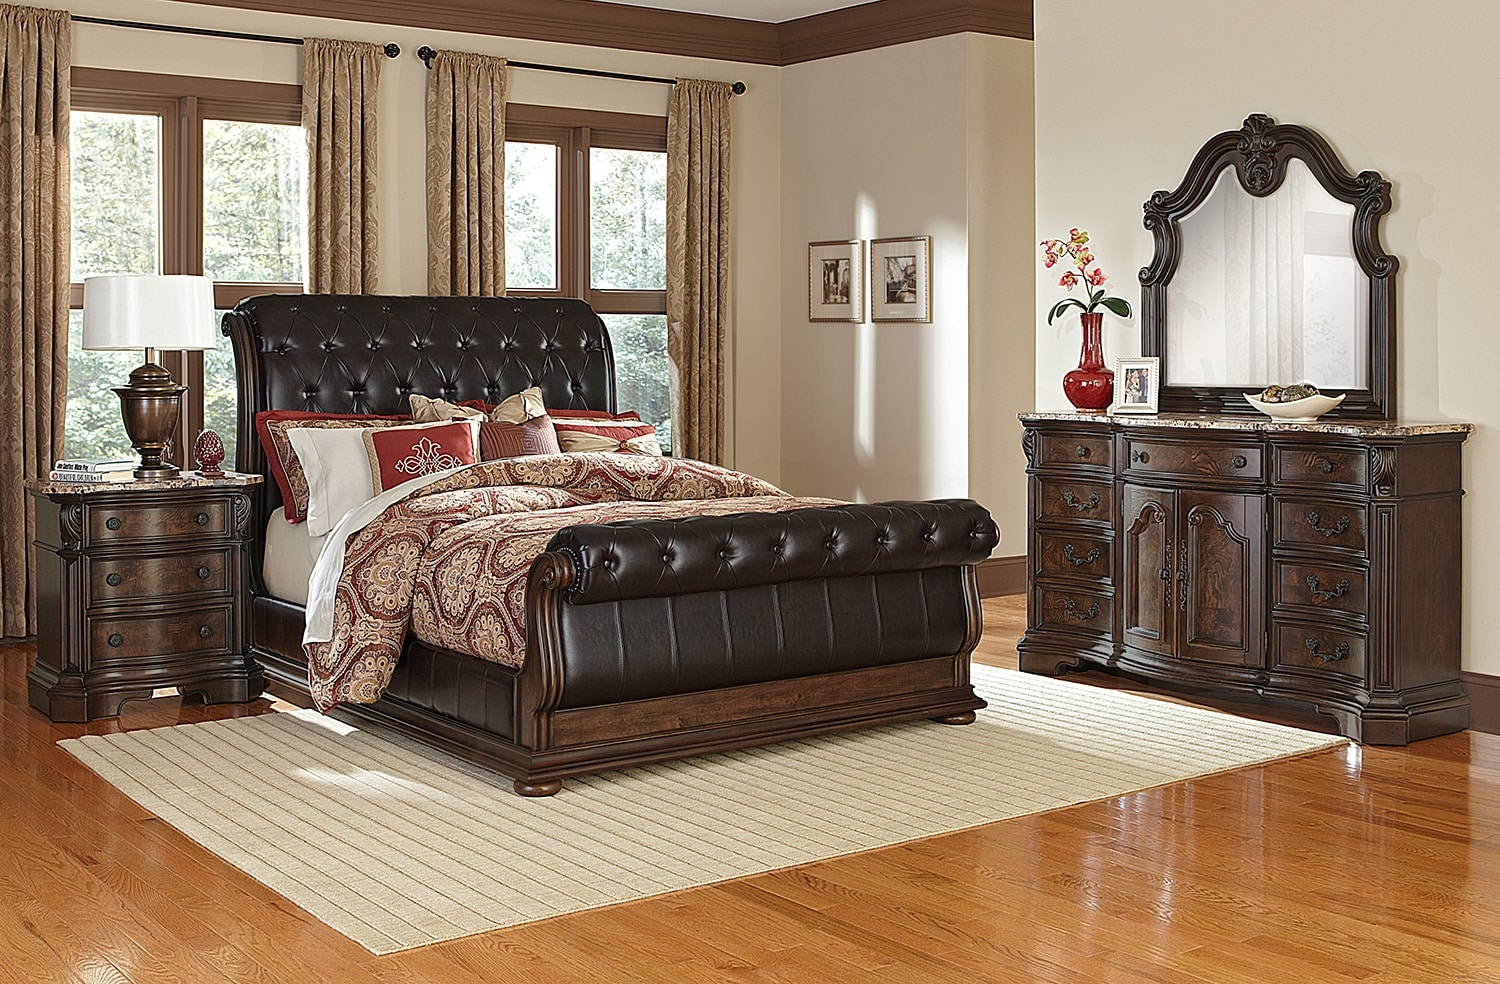 Bedroom Furniture - Monticello Pecan II 6 Pc. King Bedroom